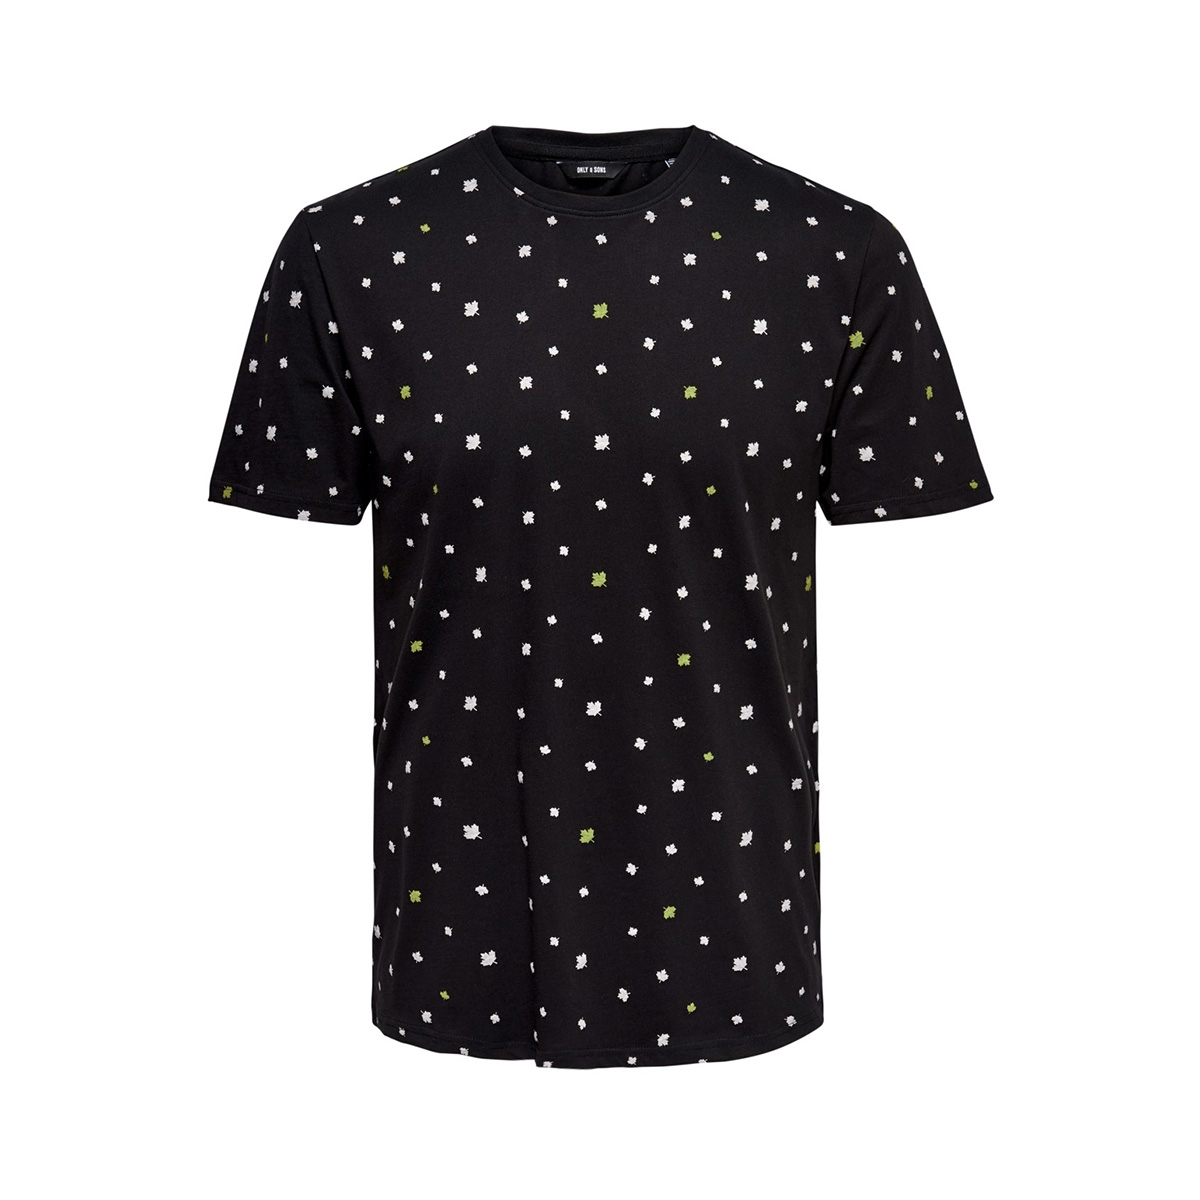 onsdivision aop ss tee vd 22013659 only & sons t-shirt black